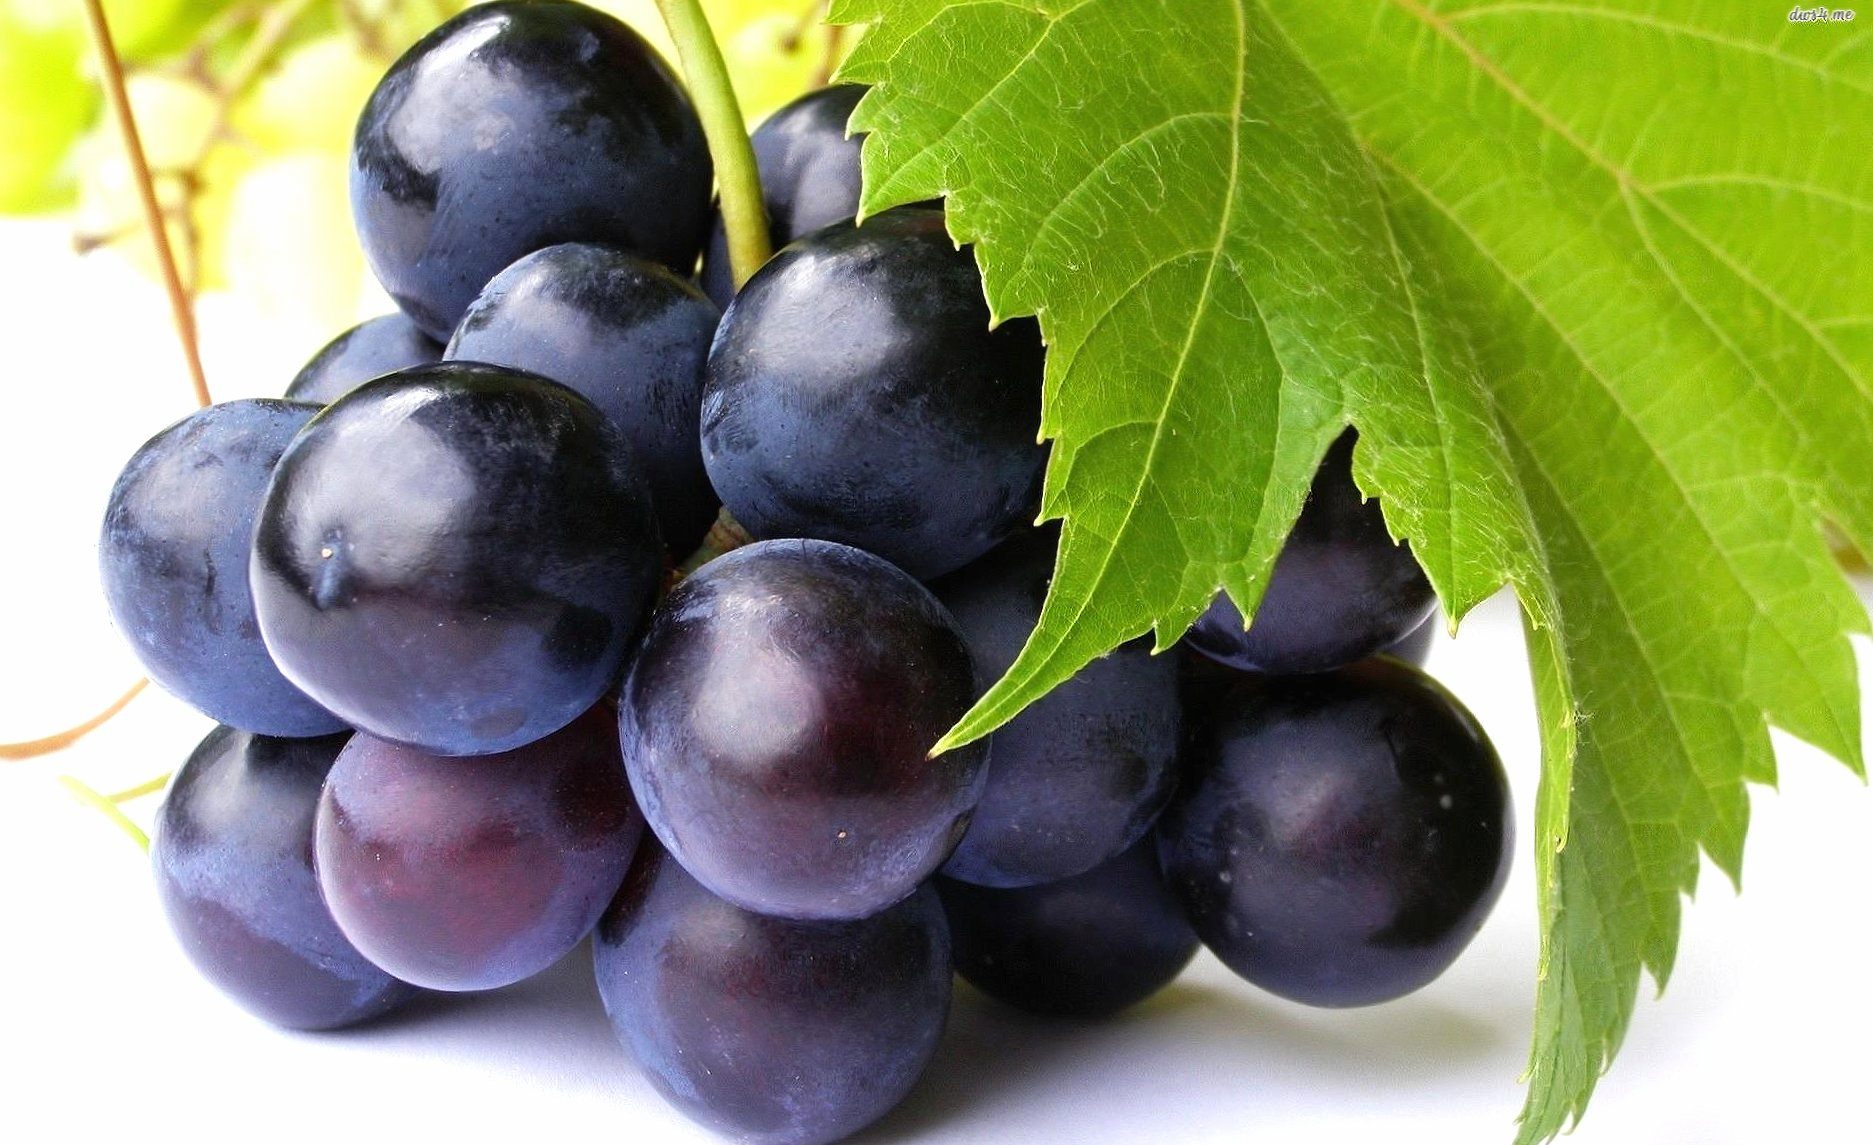 Black little grapes wallpapers HD quality